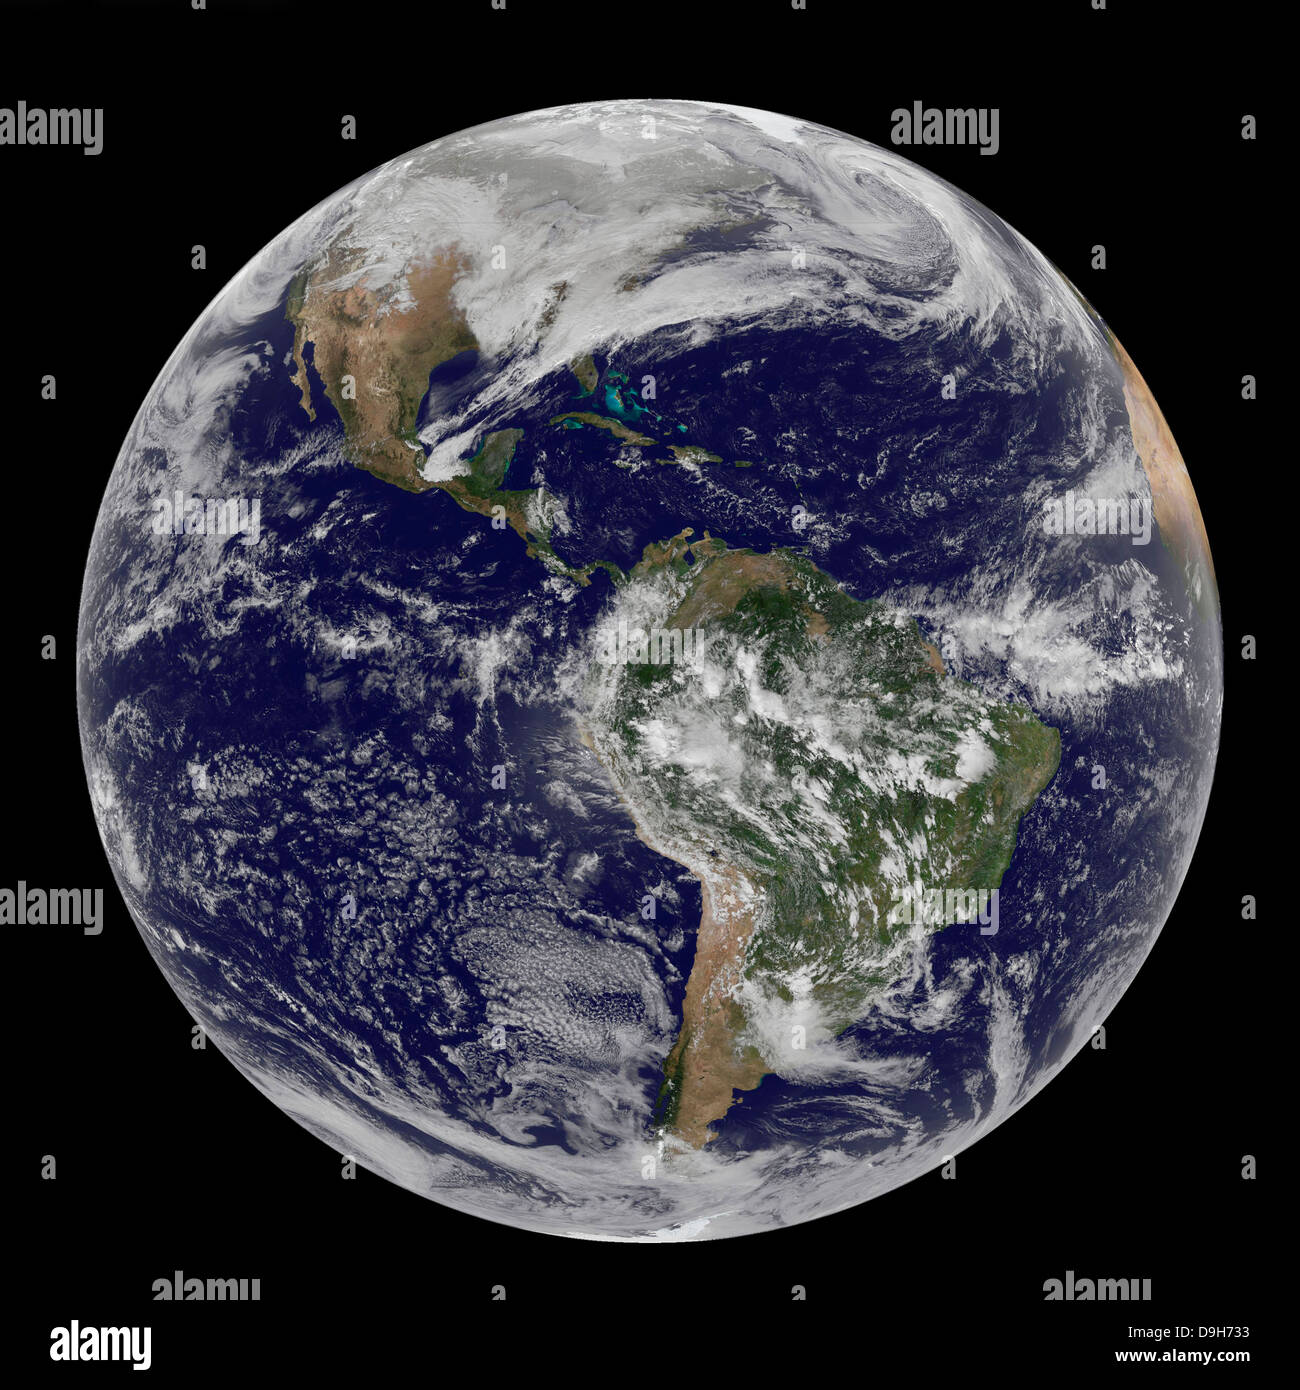 Full Earth showing North and South America. - Stock Image